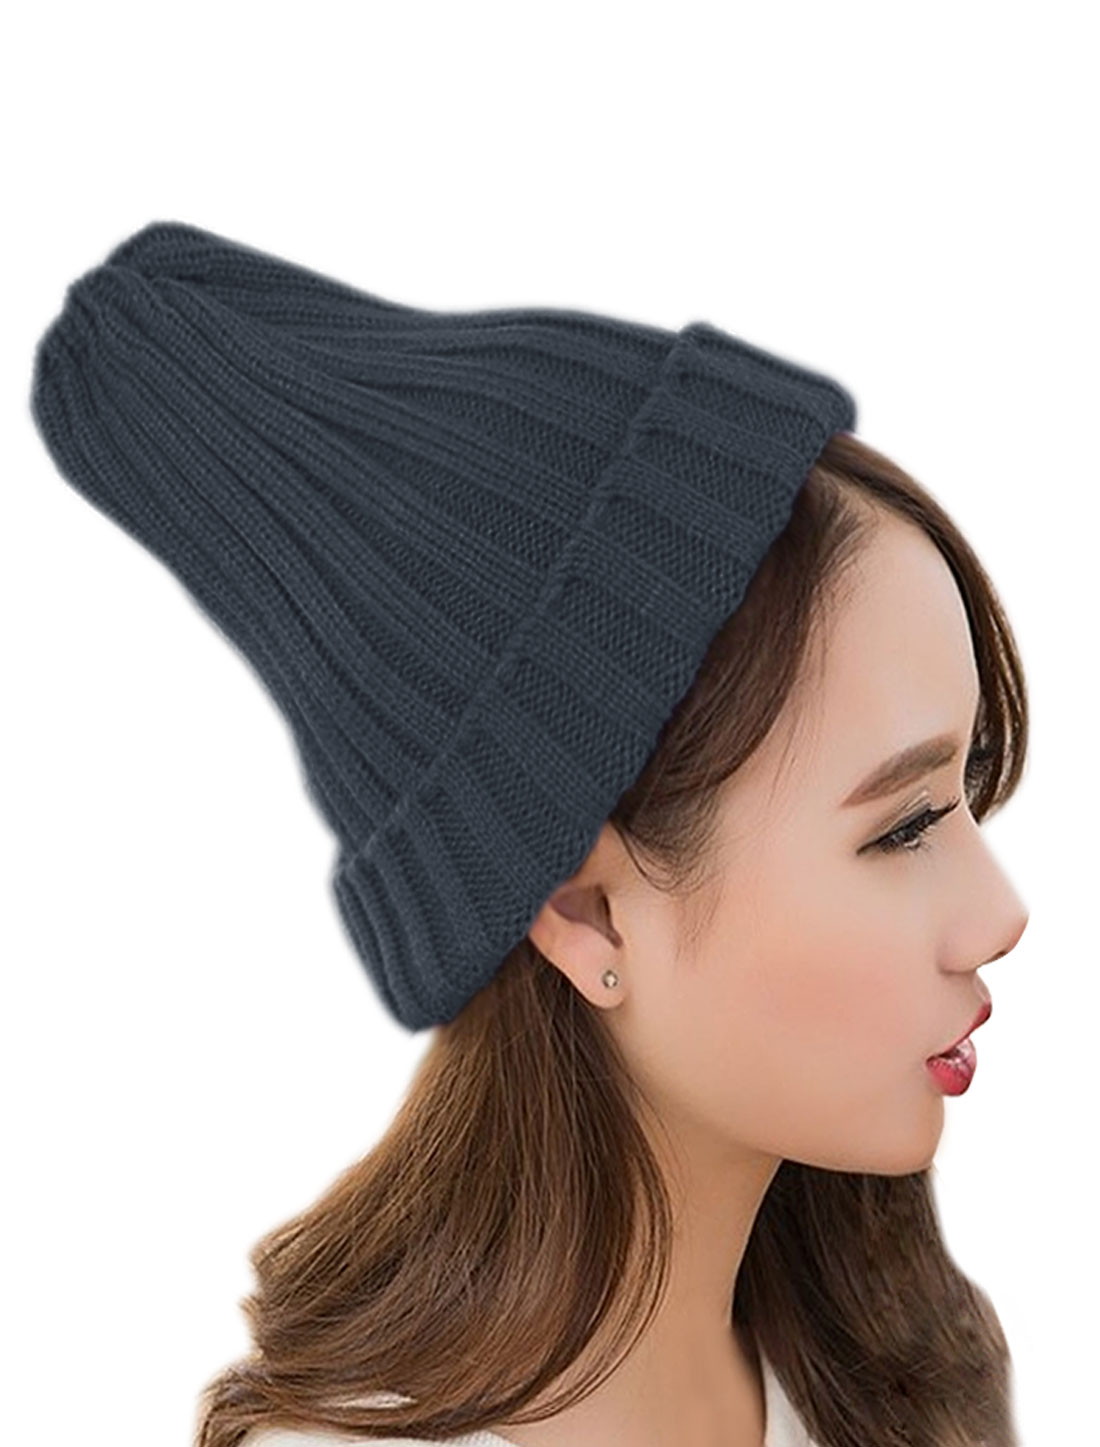 Unisex Ribbed Chunky Stretchy Casual Cuffed Slouchy Knit Ball Cap Gray